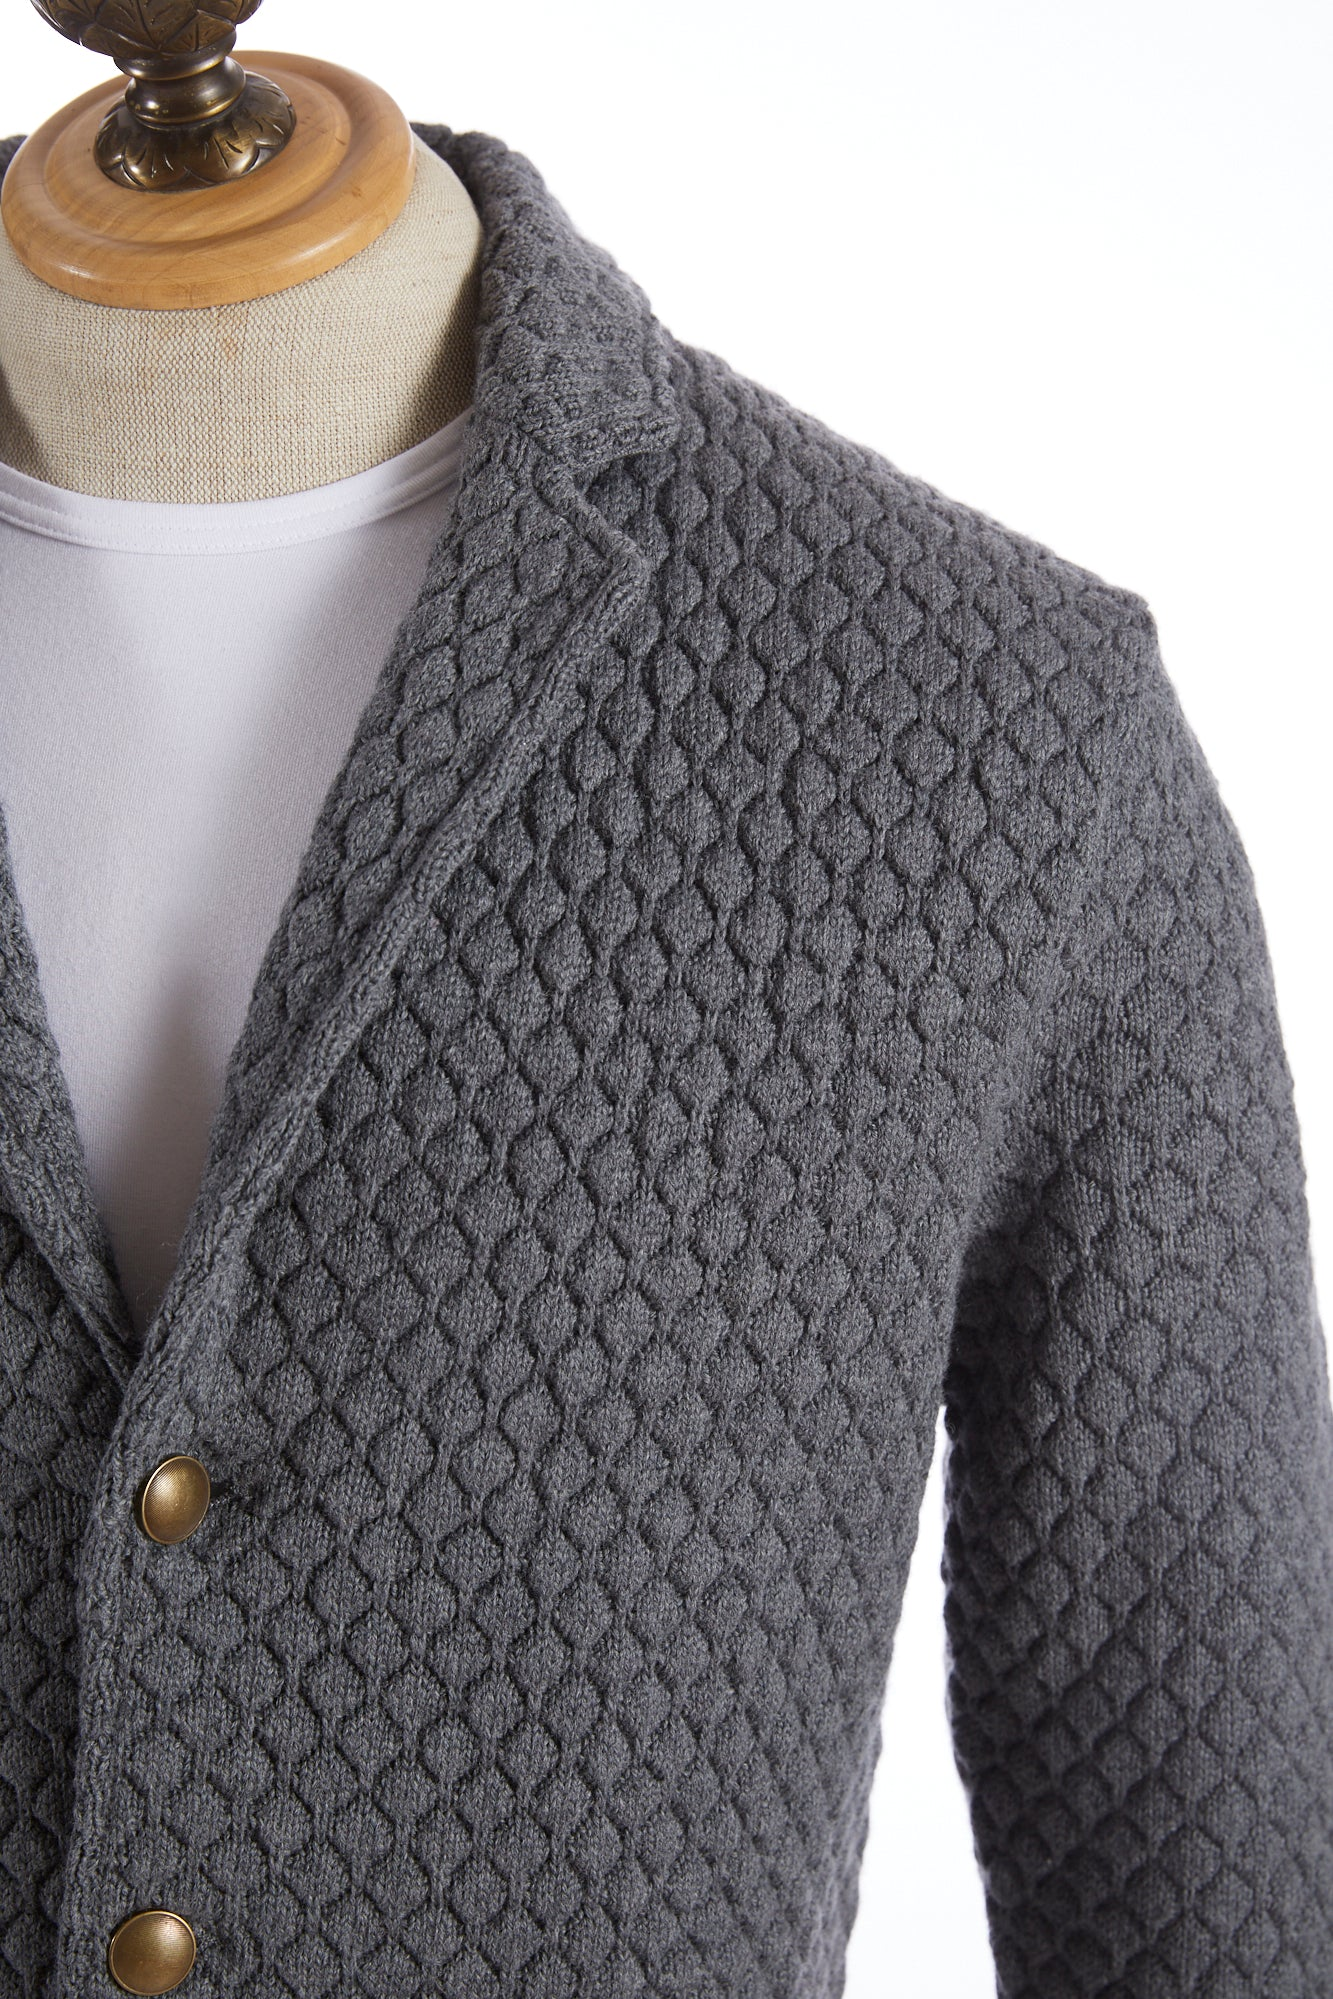 Eleventy Diamond Pattern Sweater Jacket - Sweaters - Eleventy - LALONDE's